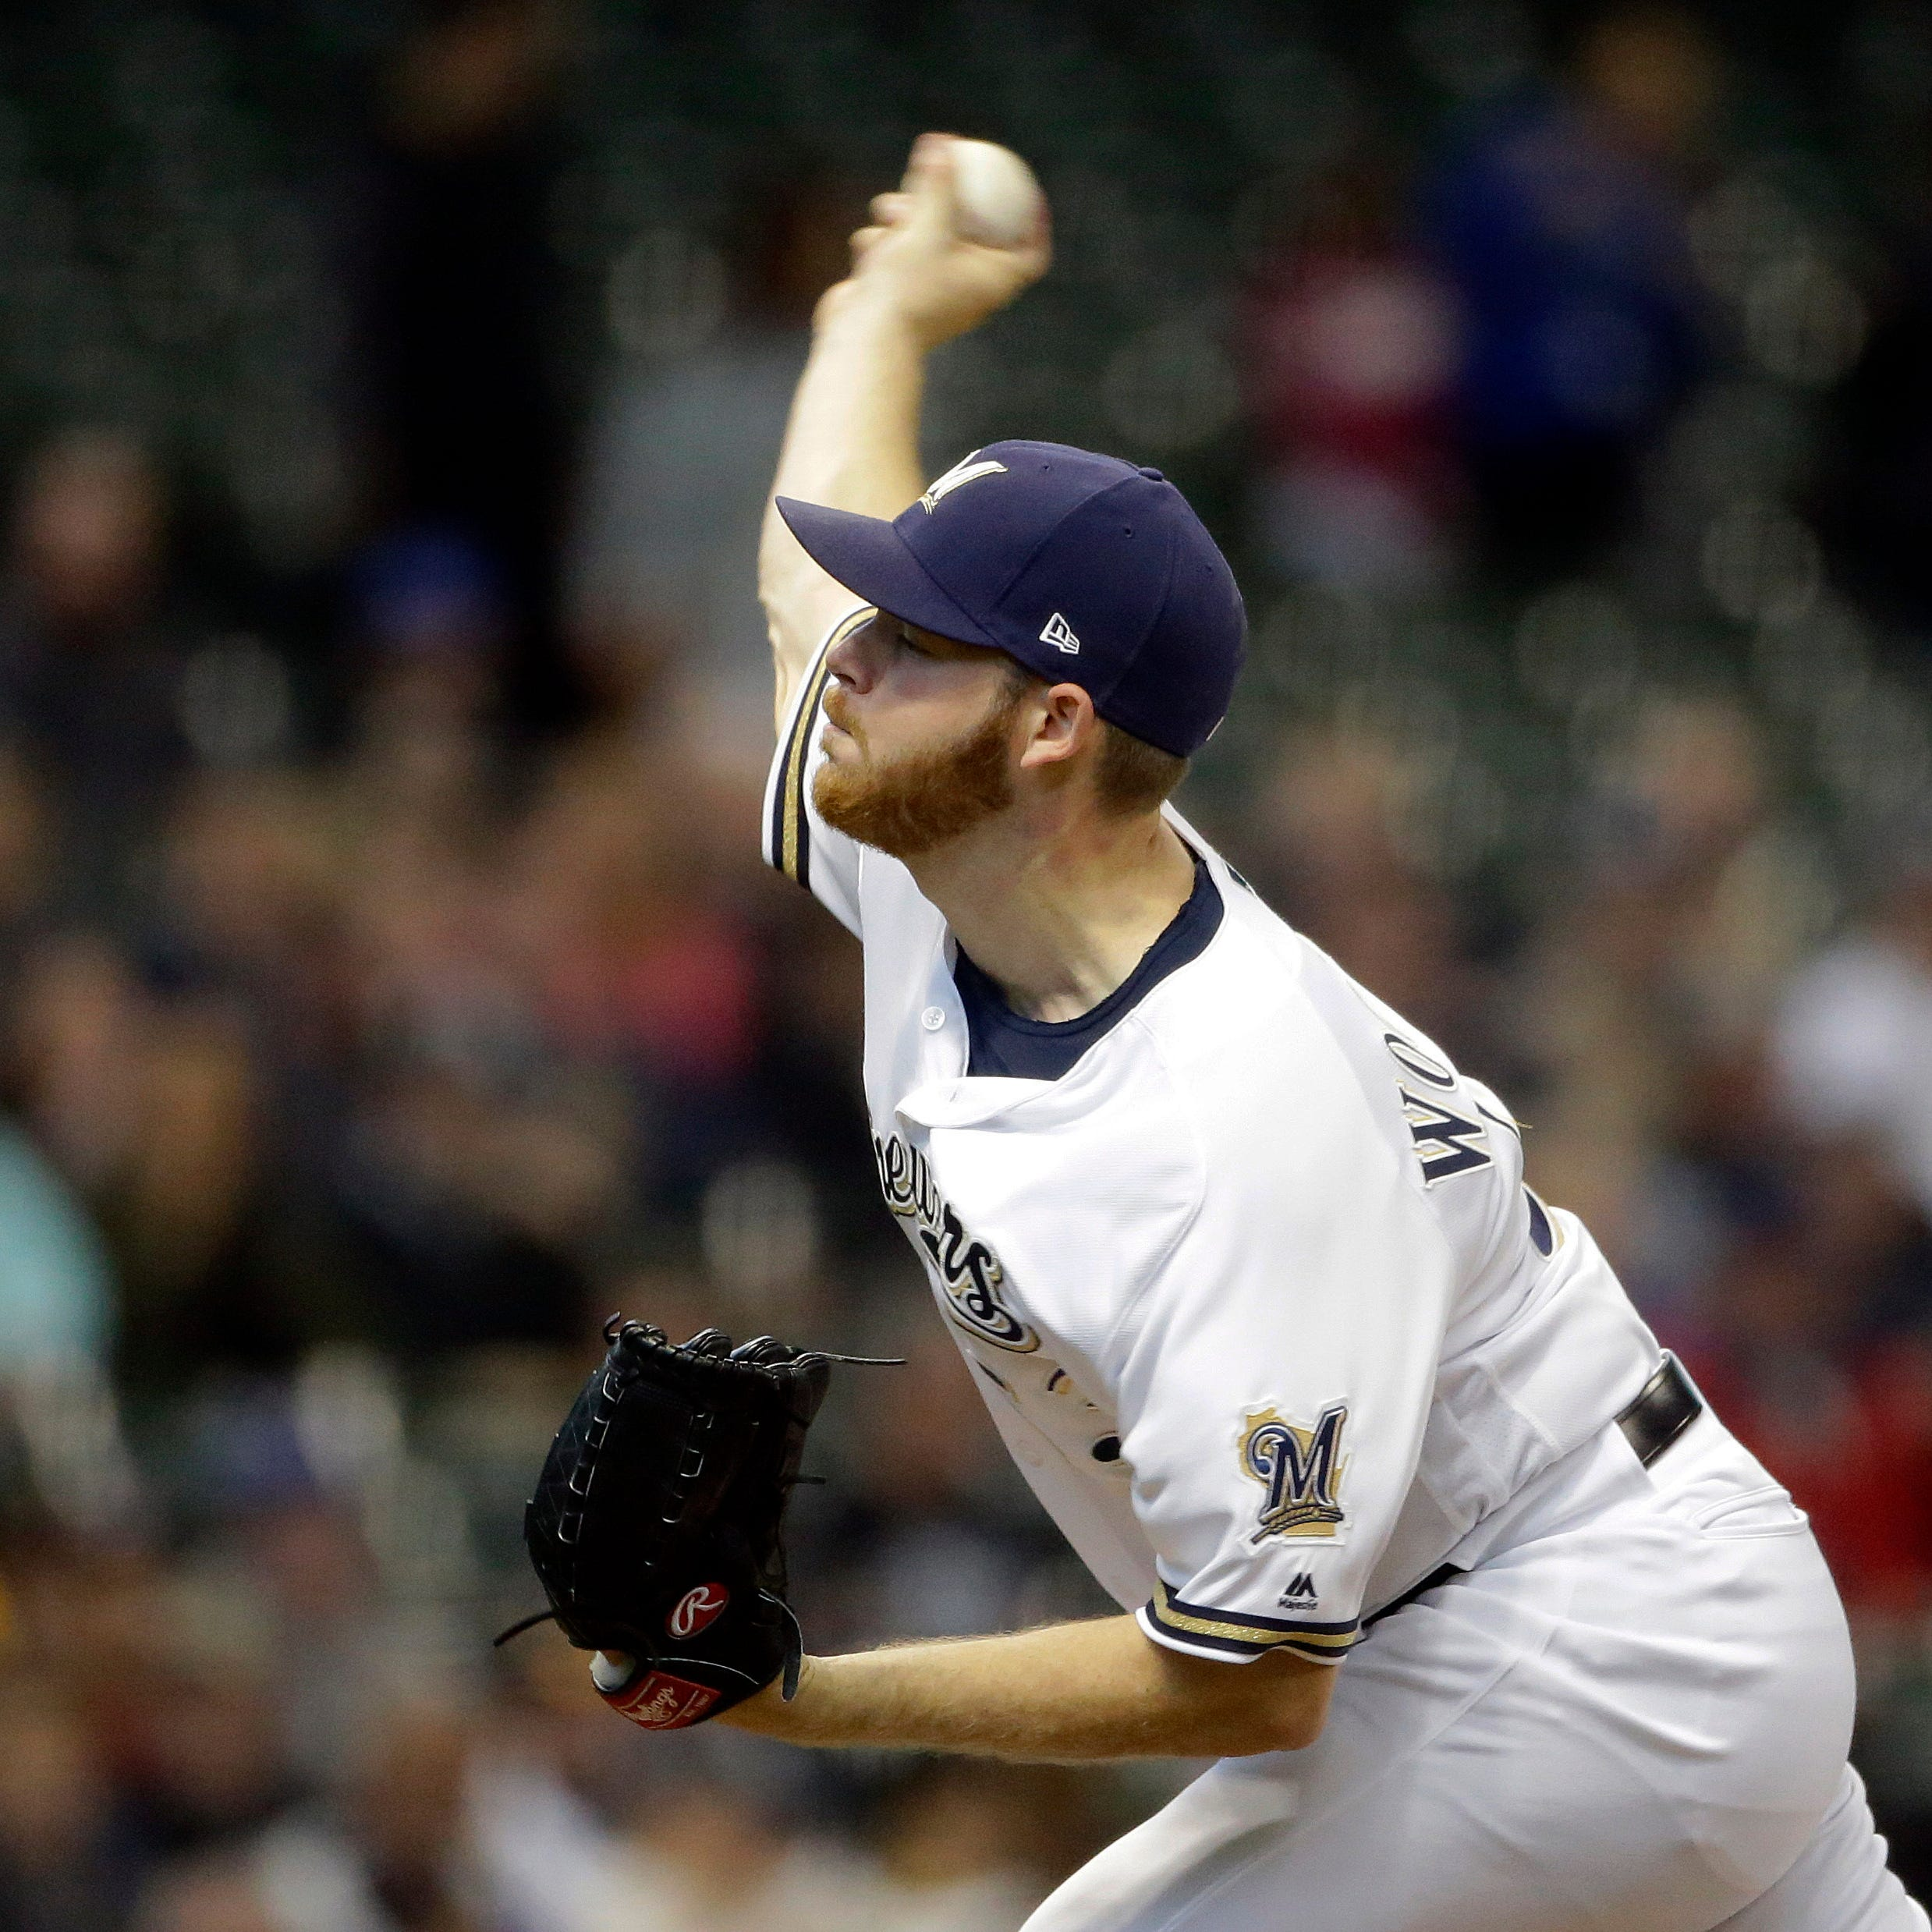 Brewers 7, Nationals 3: Brandon Woodruff makes a strong start to extend the Brewers' win streak